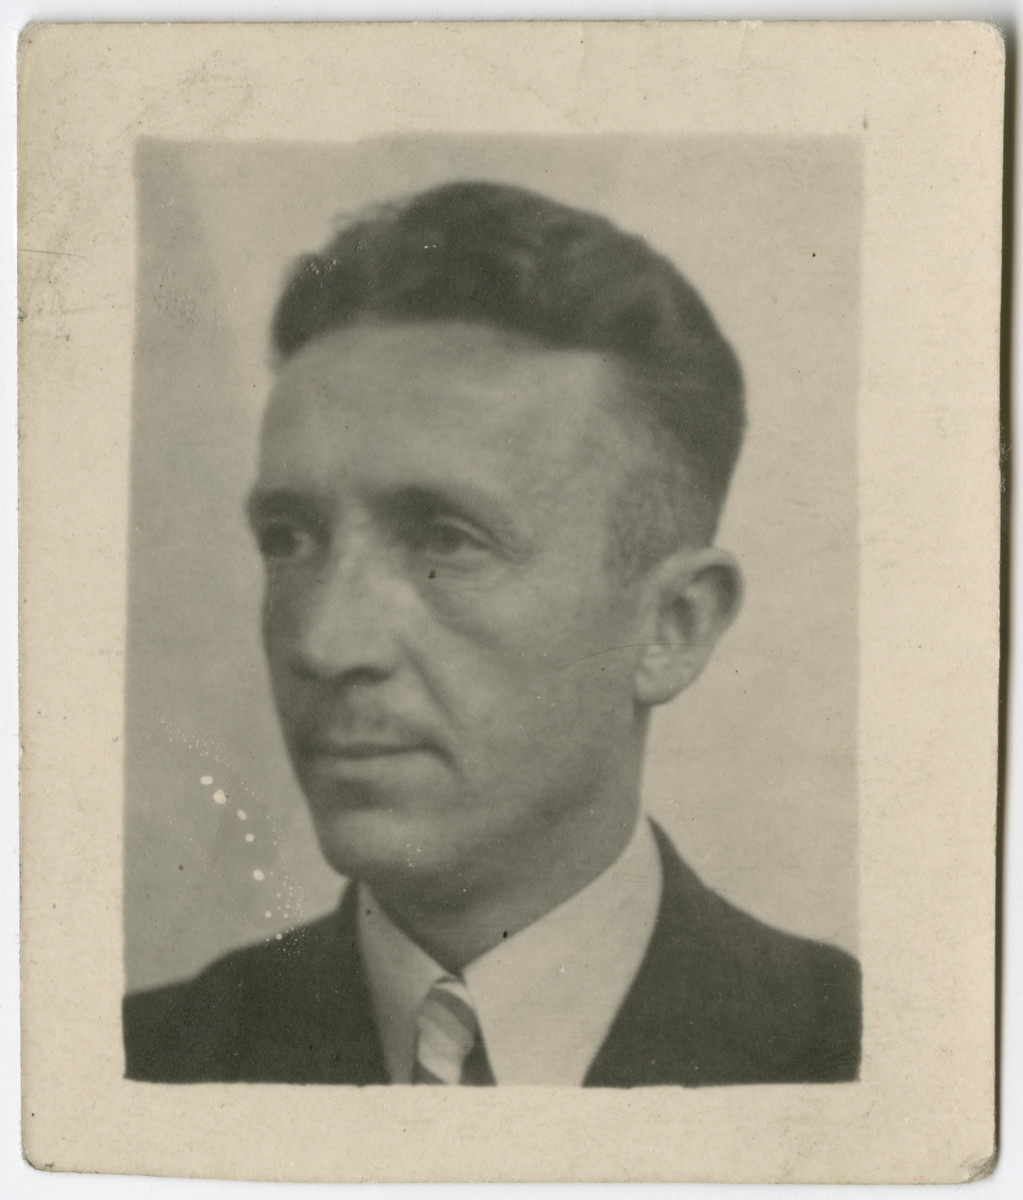 Portrait of Dick Onderweegs used on his false ID card.   Anne and Dick Onderweegs were members of the resistance in the Netherlands, where they assisted Jews in hiding.  These IDs were created to help them escape detection after they were denounced and sought for arrest. The Onderweegs resuced Louis de Groot.